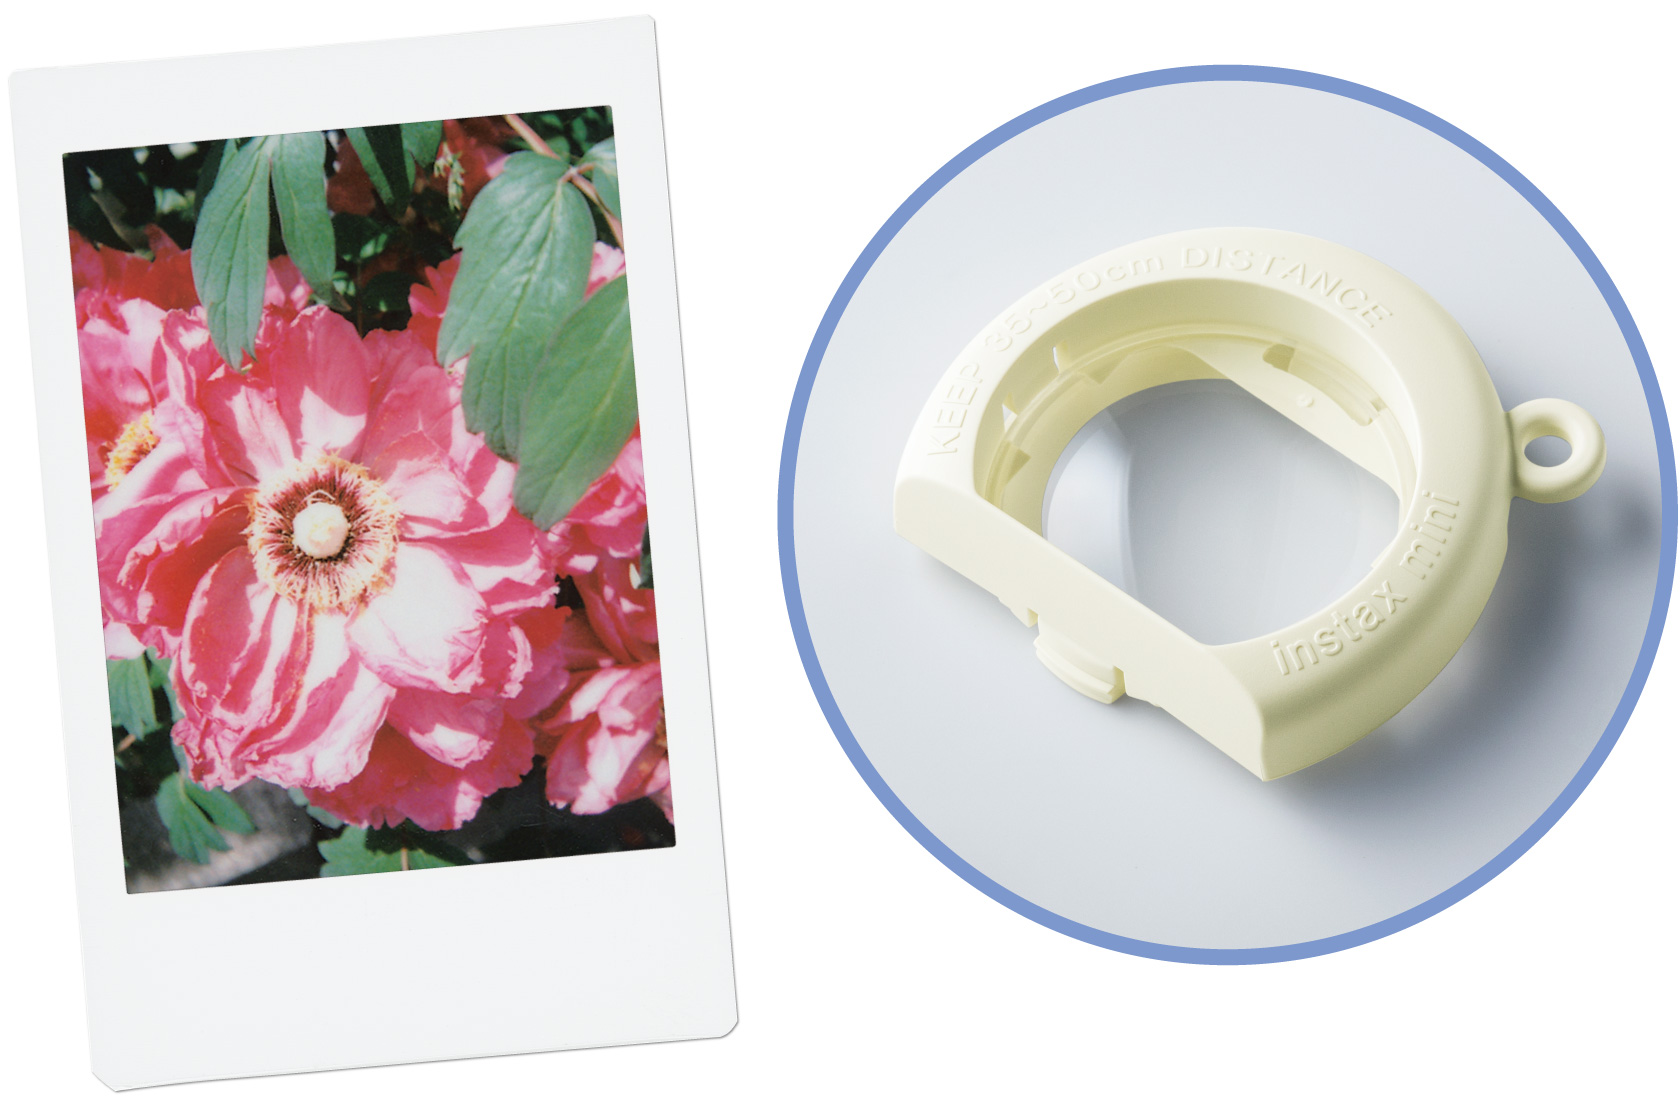 [photo] Instax Mini 9's lens attachment and the close-up picture taken with it